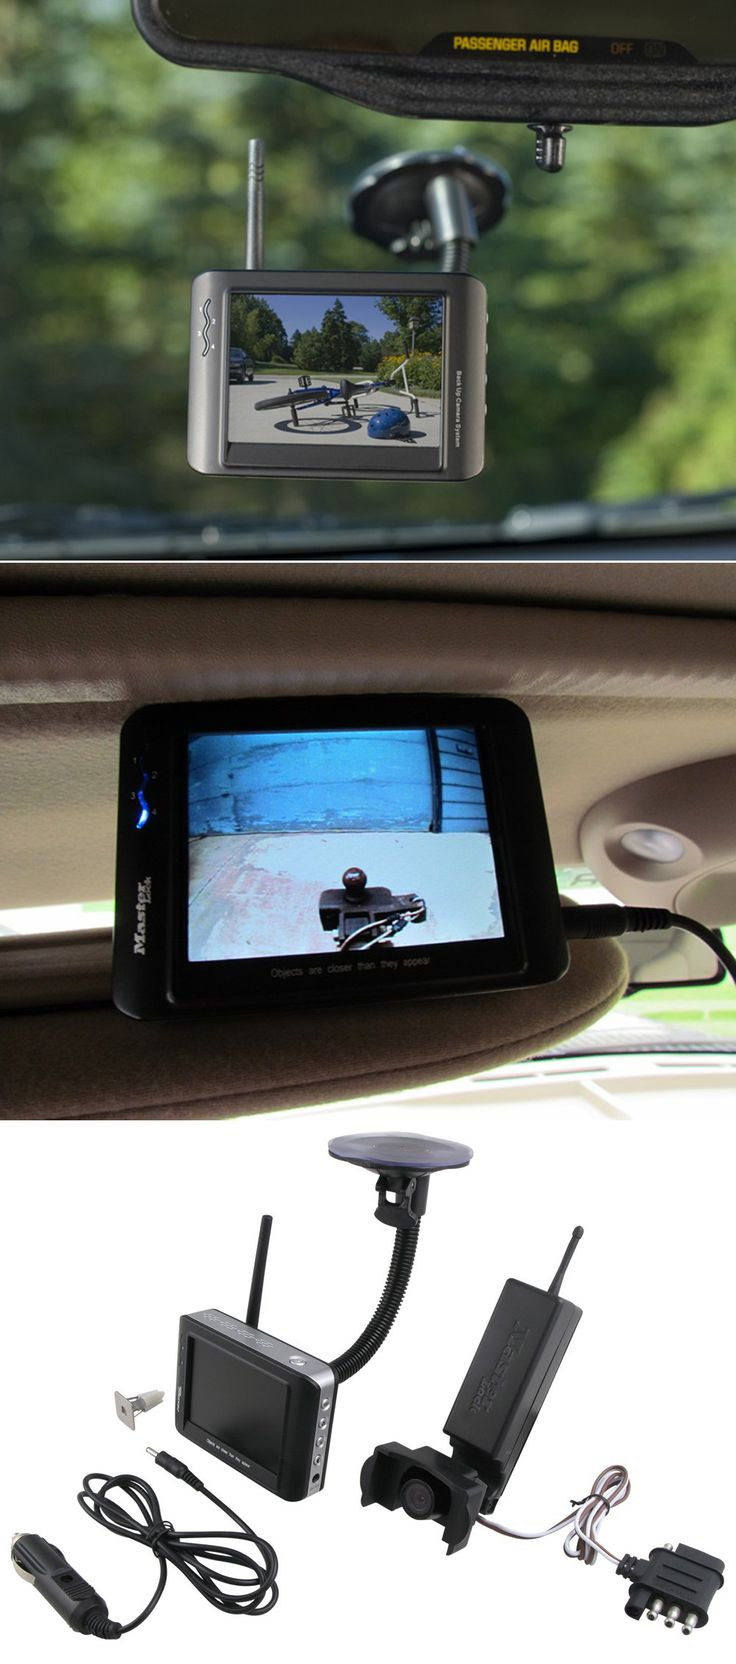 Master Lock Backup Camera for lining up the hitch or even just backing up. A unique gift idea for him who love their truck!